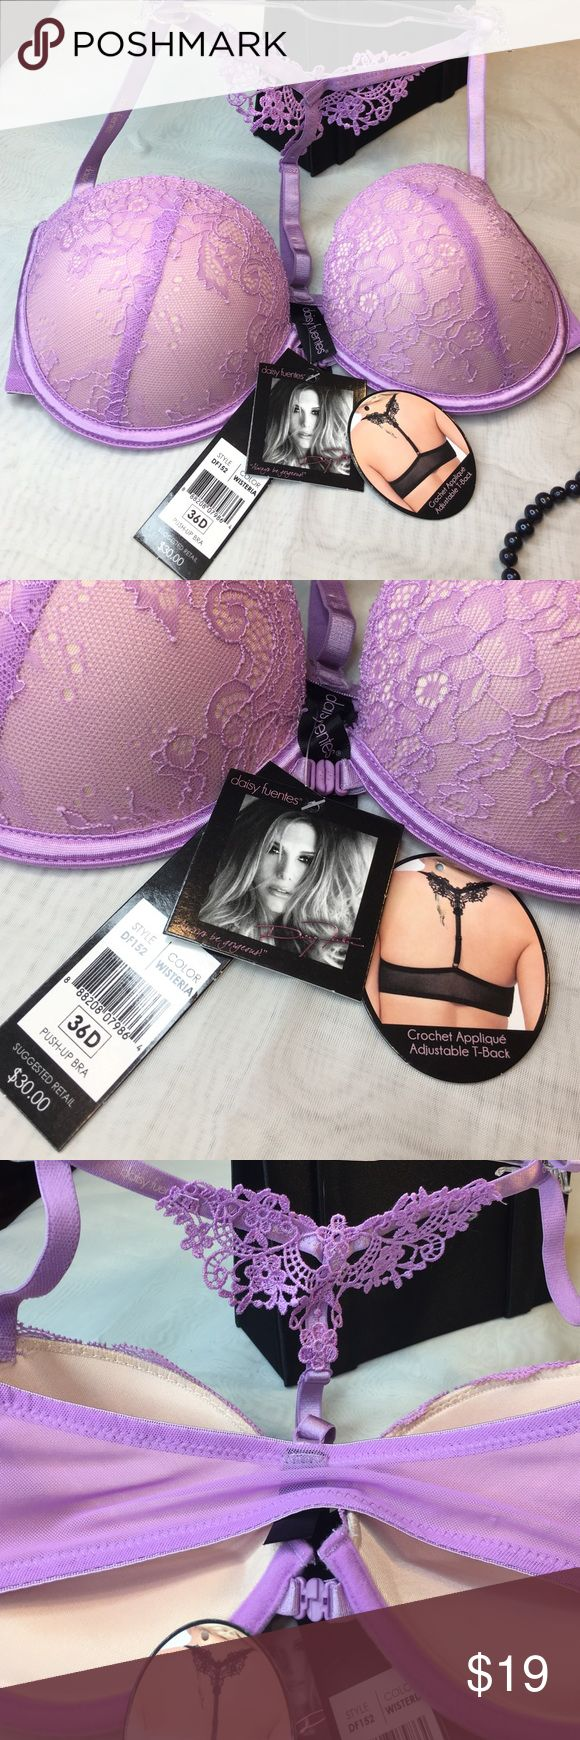 Daisy Fuentes push-up bra NWT NWT lavender color front closure. Push-up with crochet appliqué adjustable T-Back 😍 Daisy Fuentes Intimates & Sleepwear Bras